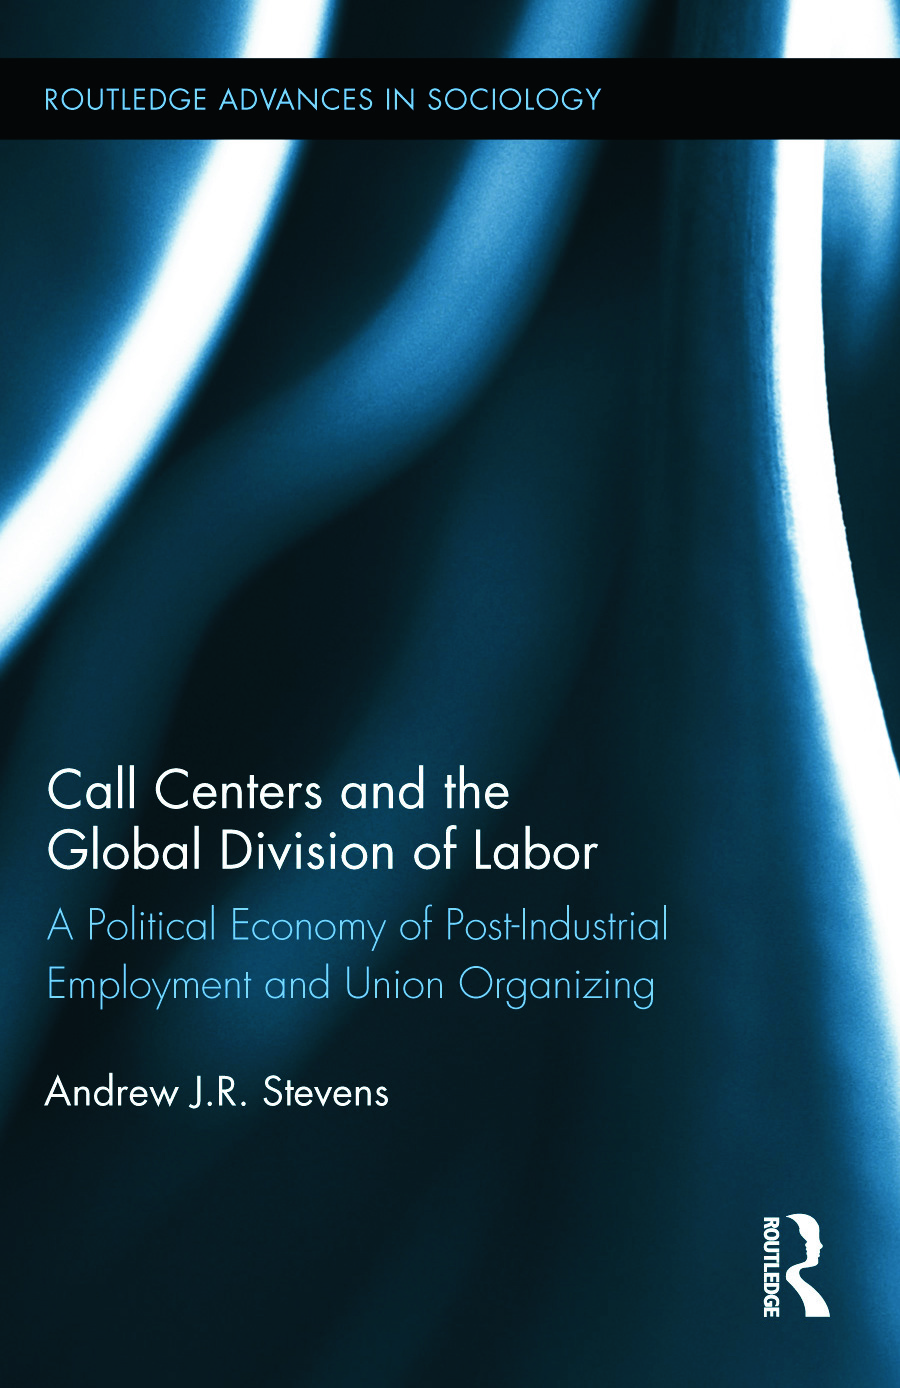 Call Centers and the Global Division of Labor